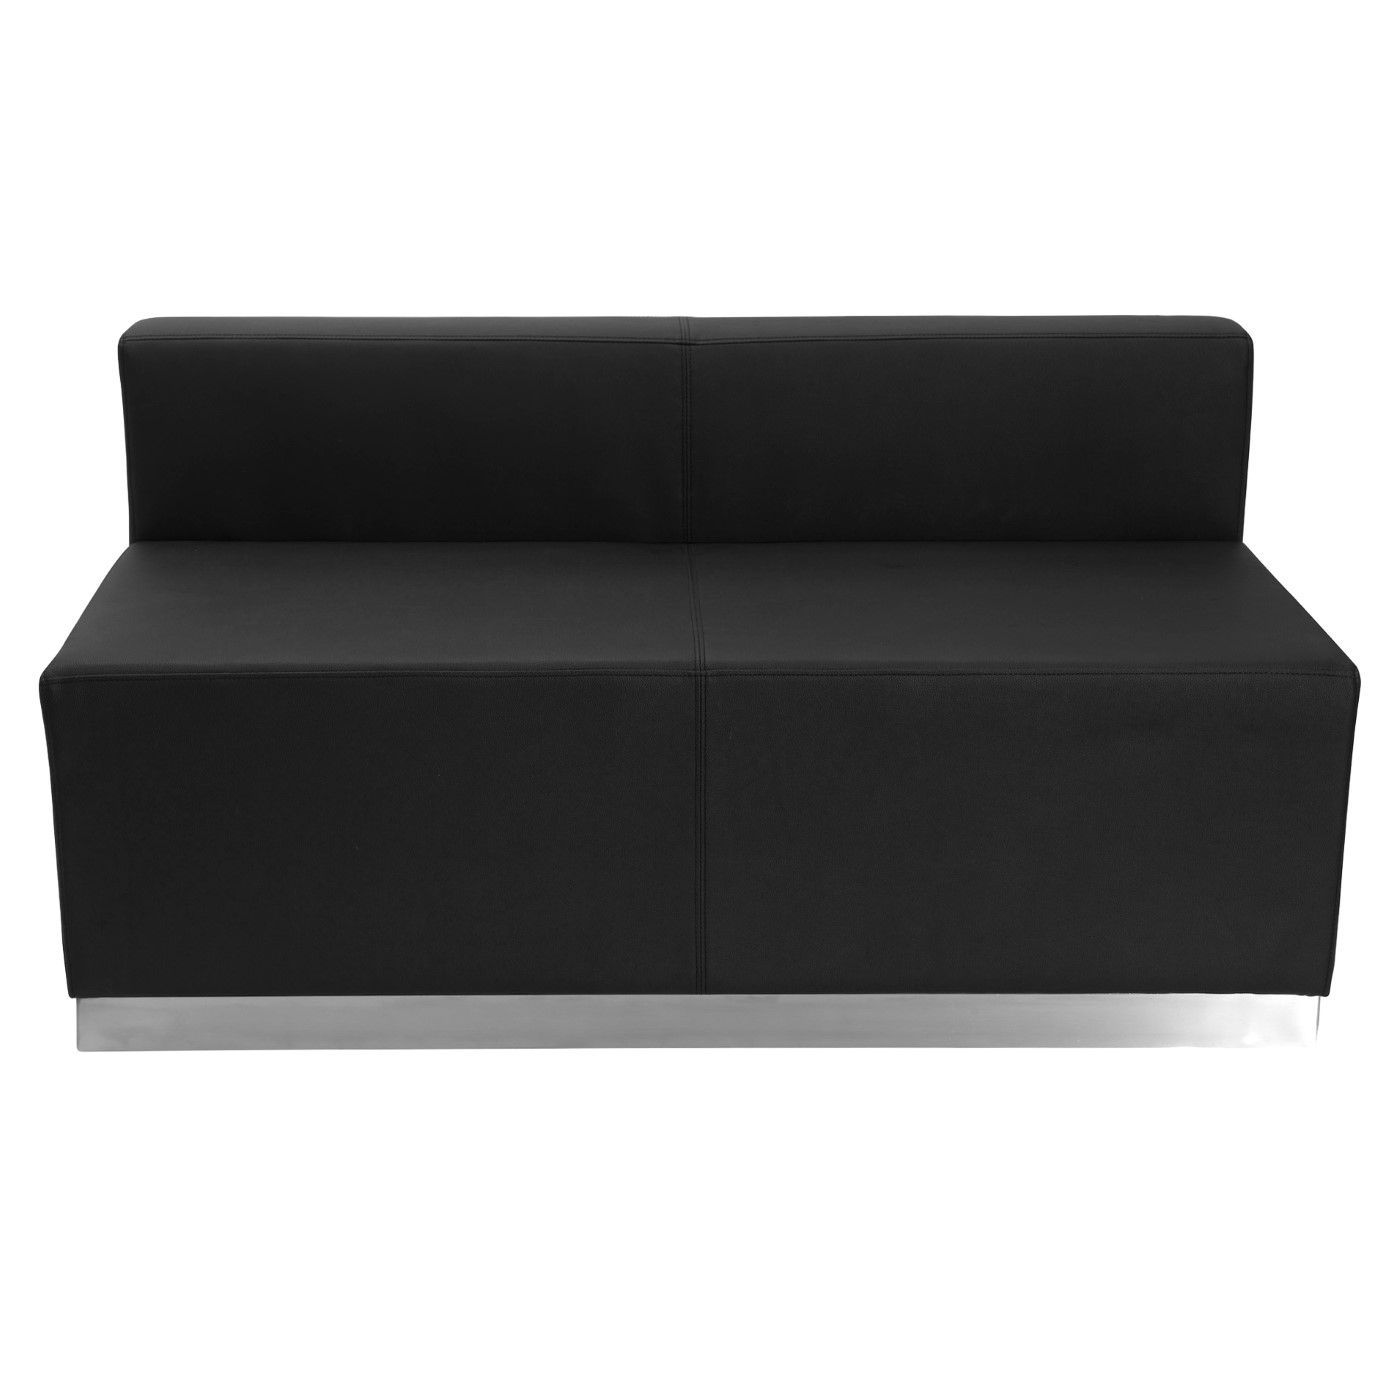 TOUGH ENOUGH Alon Series Black LeatherSoft Loveseat with Brushed Stainless Steel Base